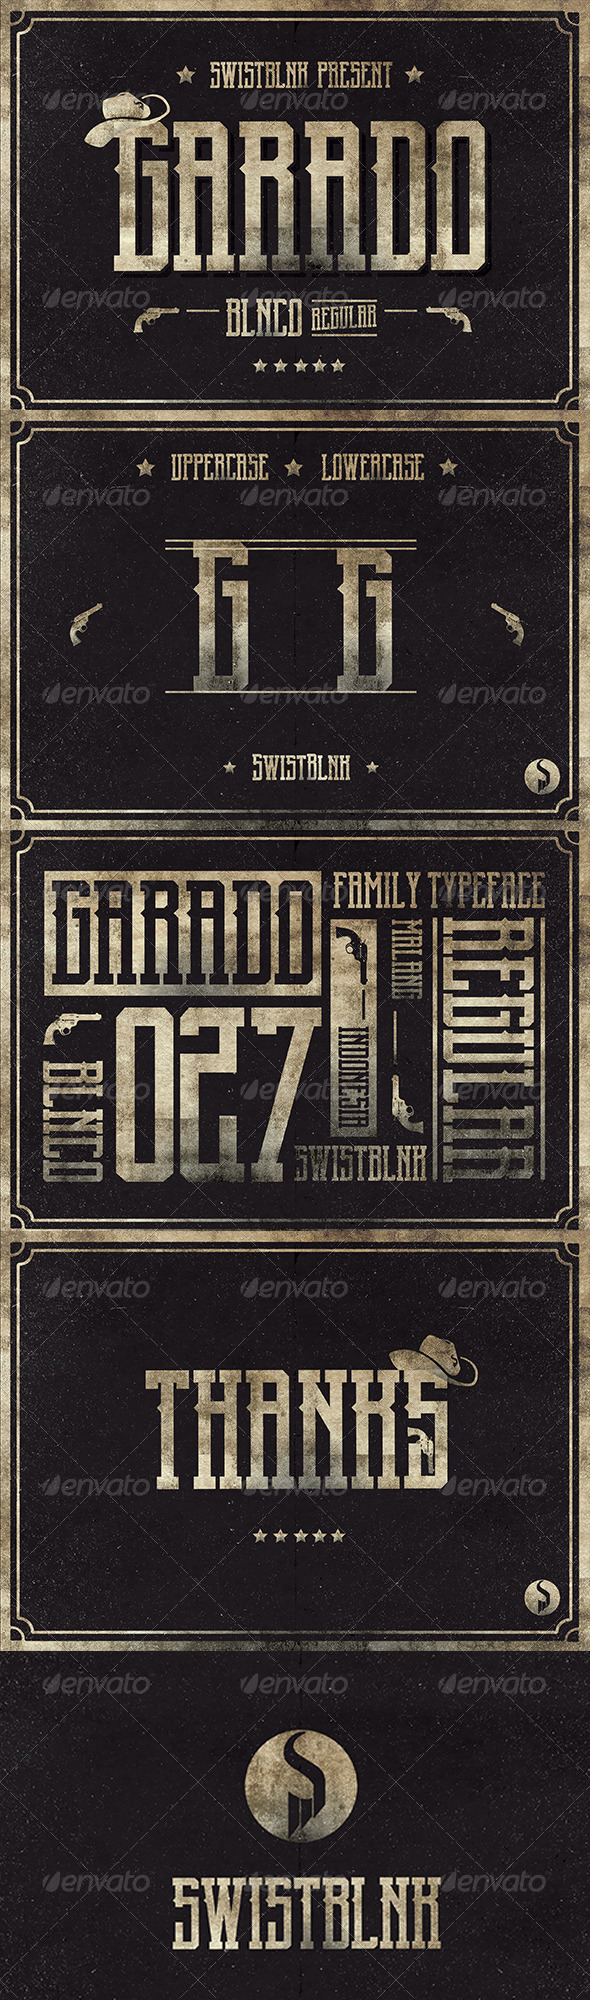 GraphicRiver Garado Blnco Regular 7241389